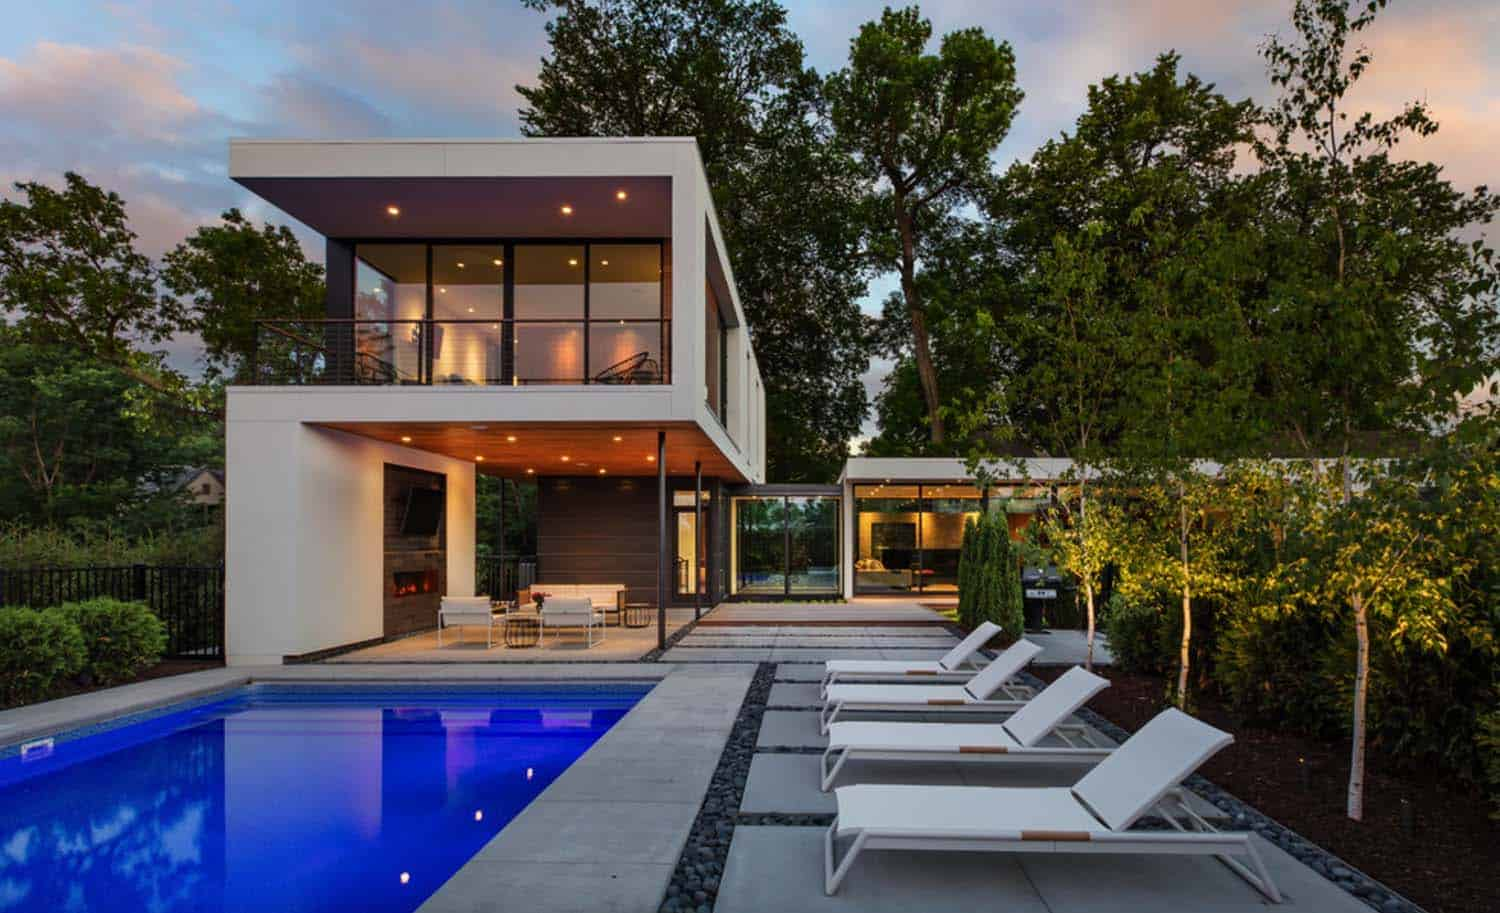 Dynamic Modern Home-Peterssen Keller Architecture-01-1 Kindesign